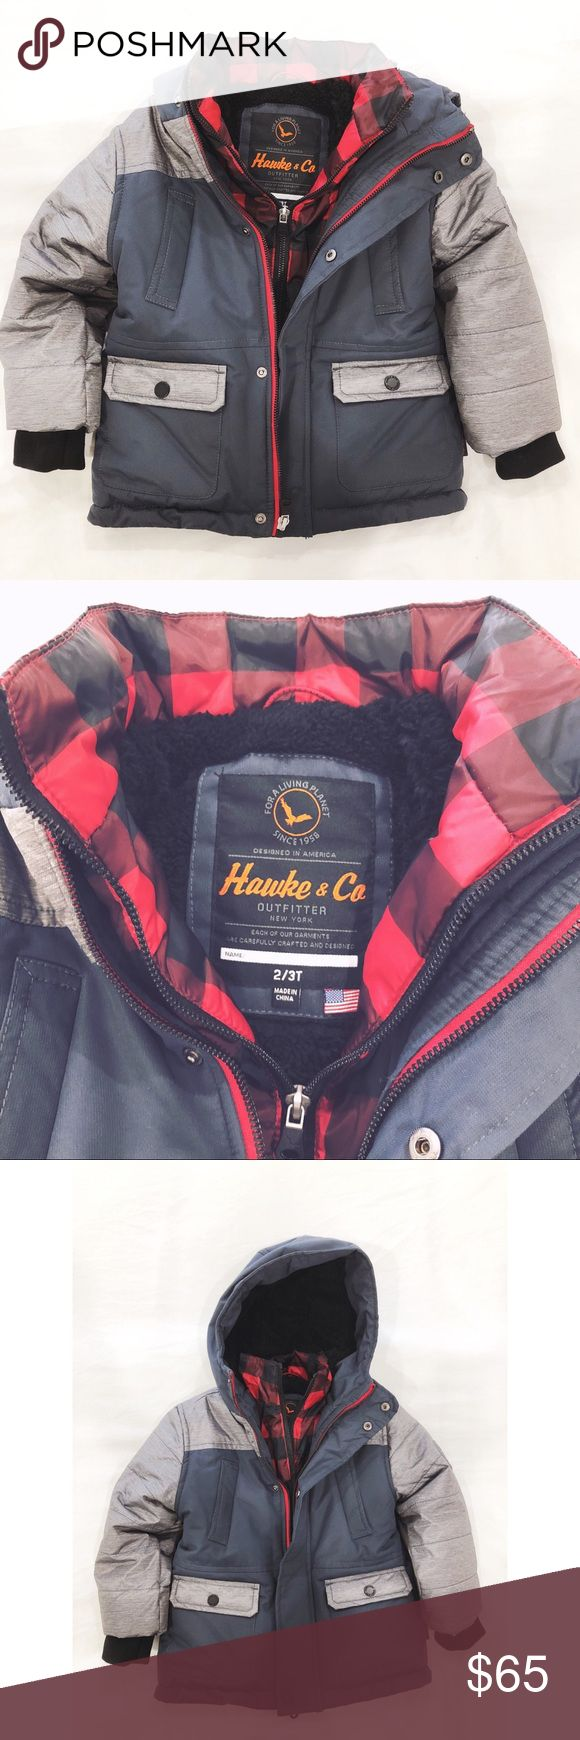 Hawke & Co boys Parka Jacket Brand new Boys 2/3T never worn only tried on, I ripped off the tag thinking it would fit my son. NWOT. Hooded, plaid zip inner liner, long sleeves, zip closure, four pocket design. Imported. Hawke & Co Jackets & Coats